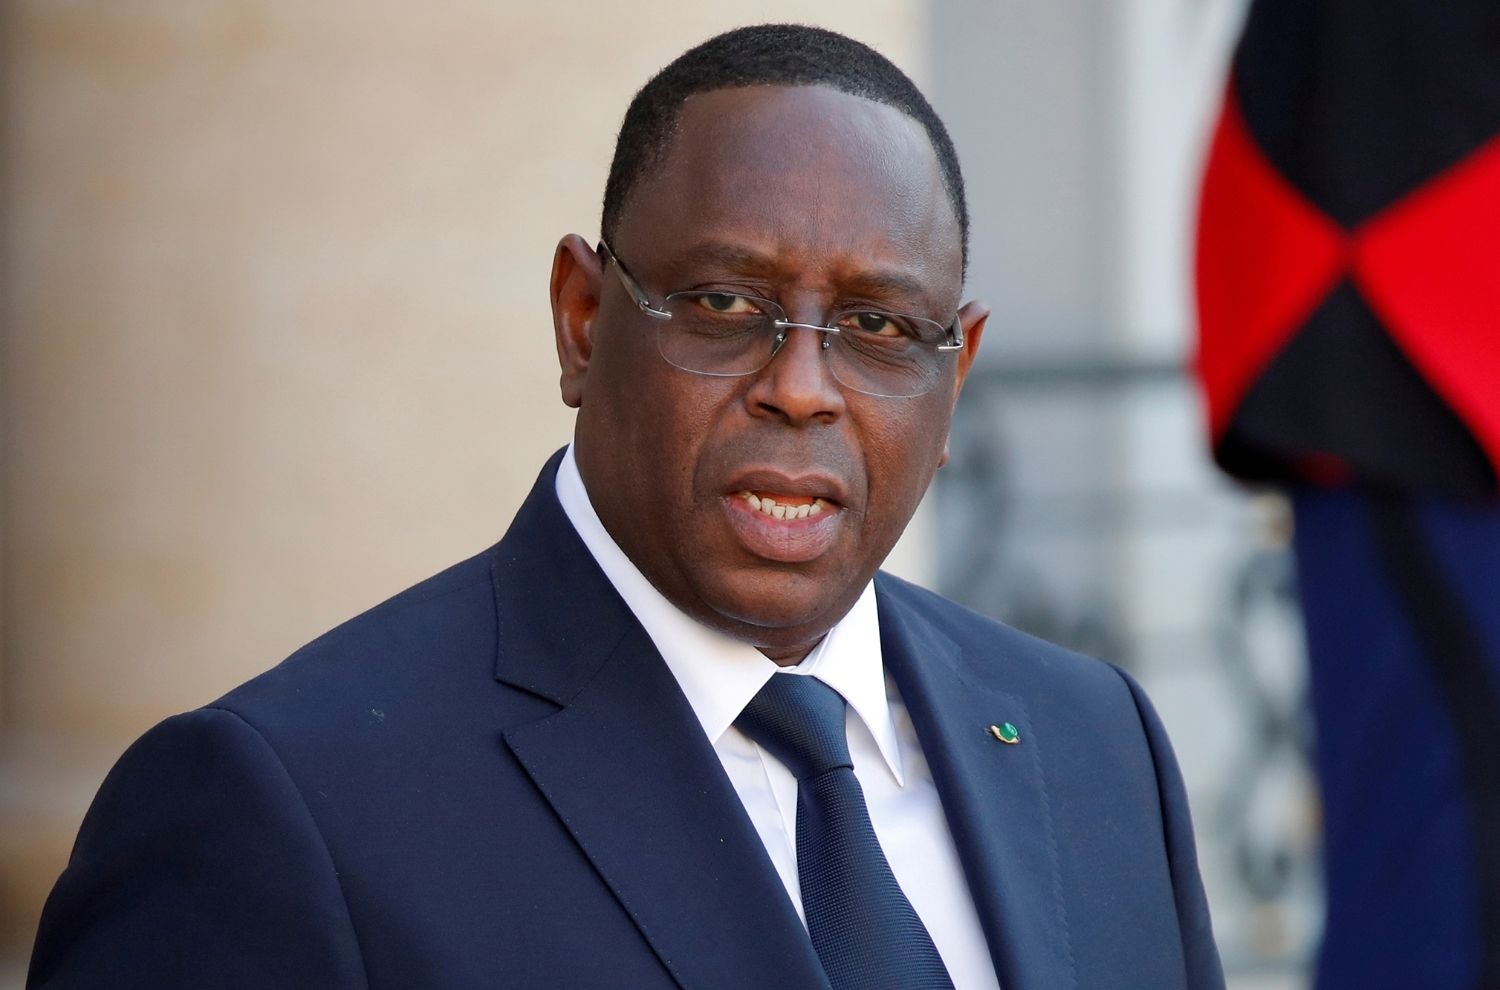 Senegalese President Macky Sall's entourage has split into rival factions.